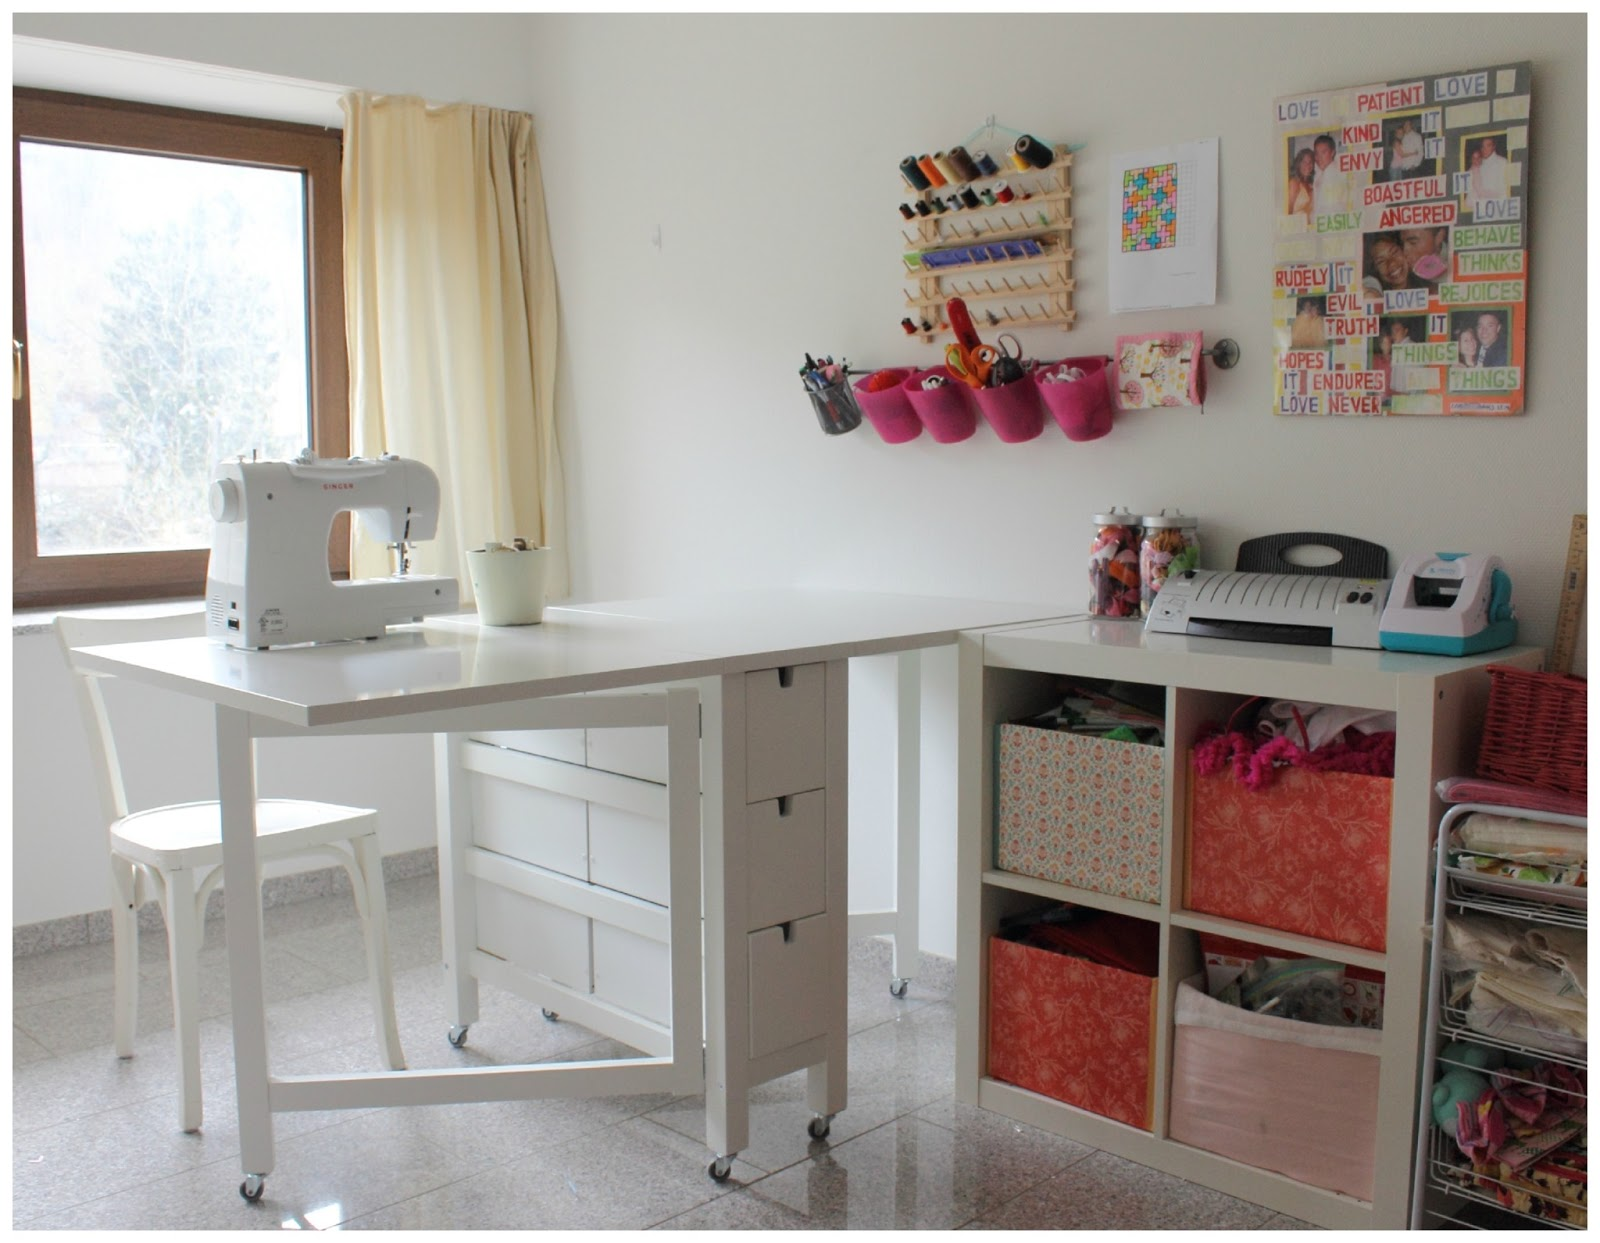 Make It Cozee Norden Gateleg With Wheels Sewing Table